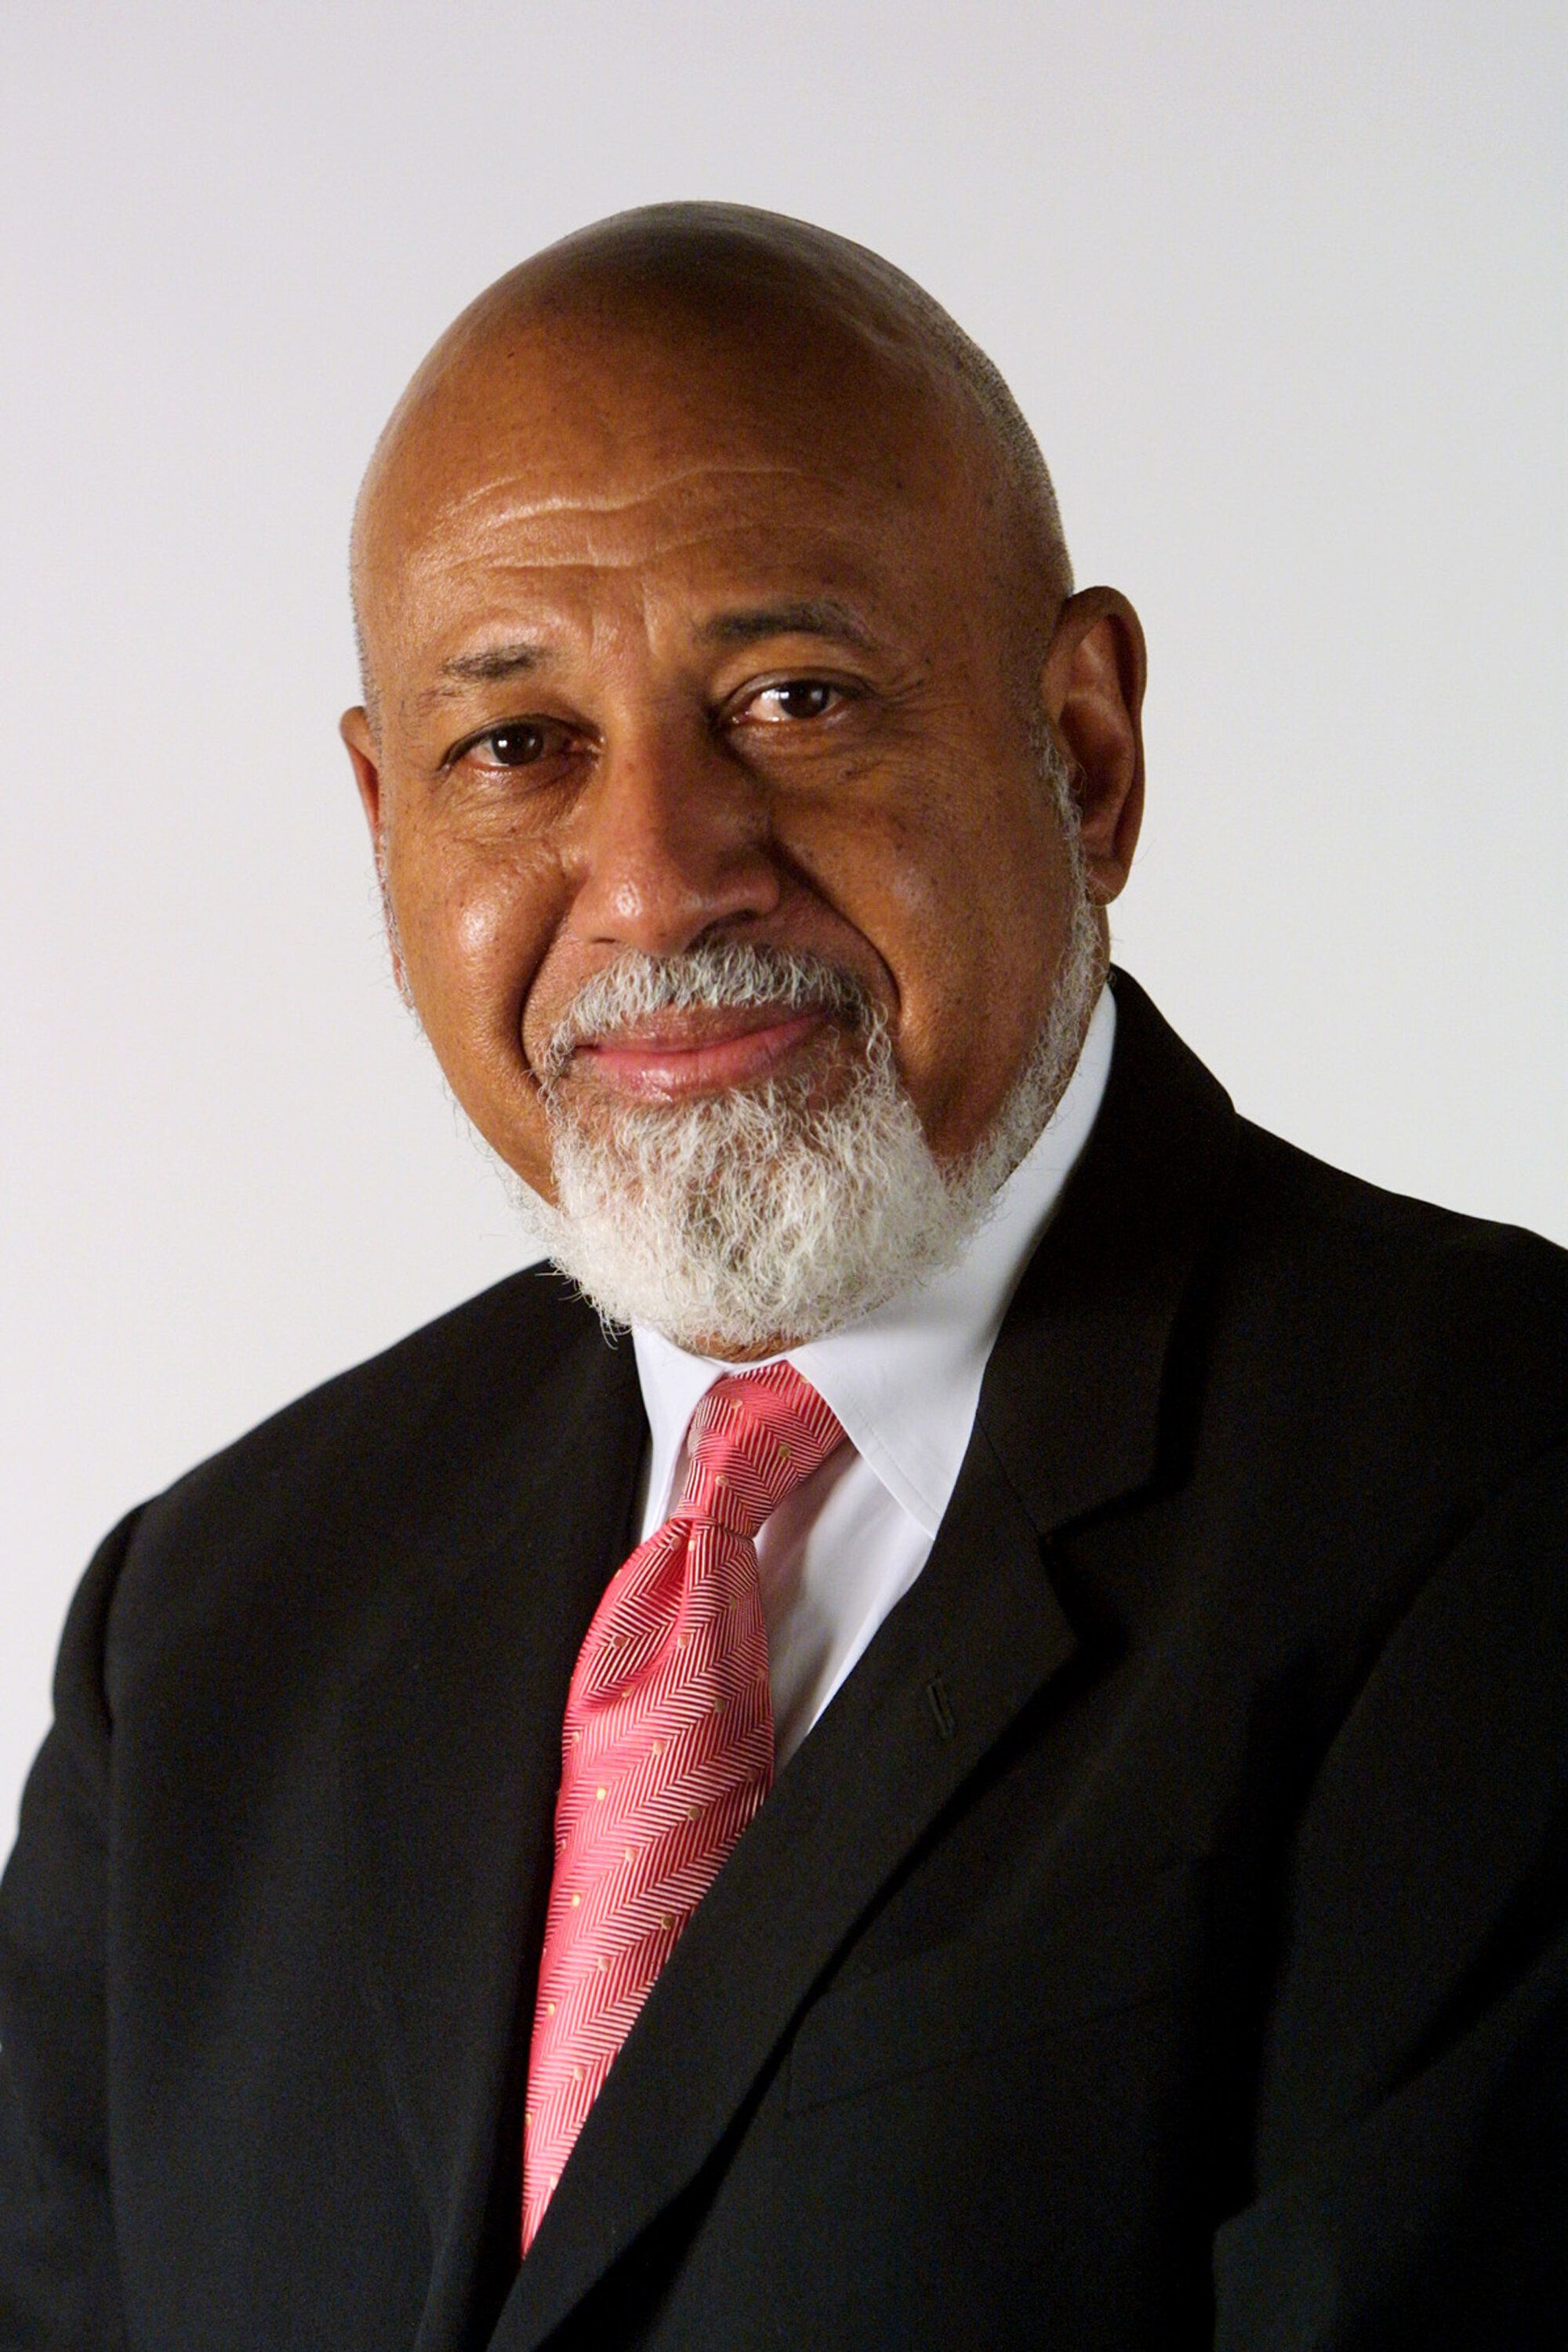 Rep. Alcee Hastings, the fiercely liberal longtime Florida congressman who was dogged throughout his tenure by an impeachment